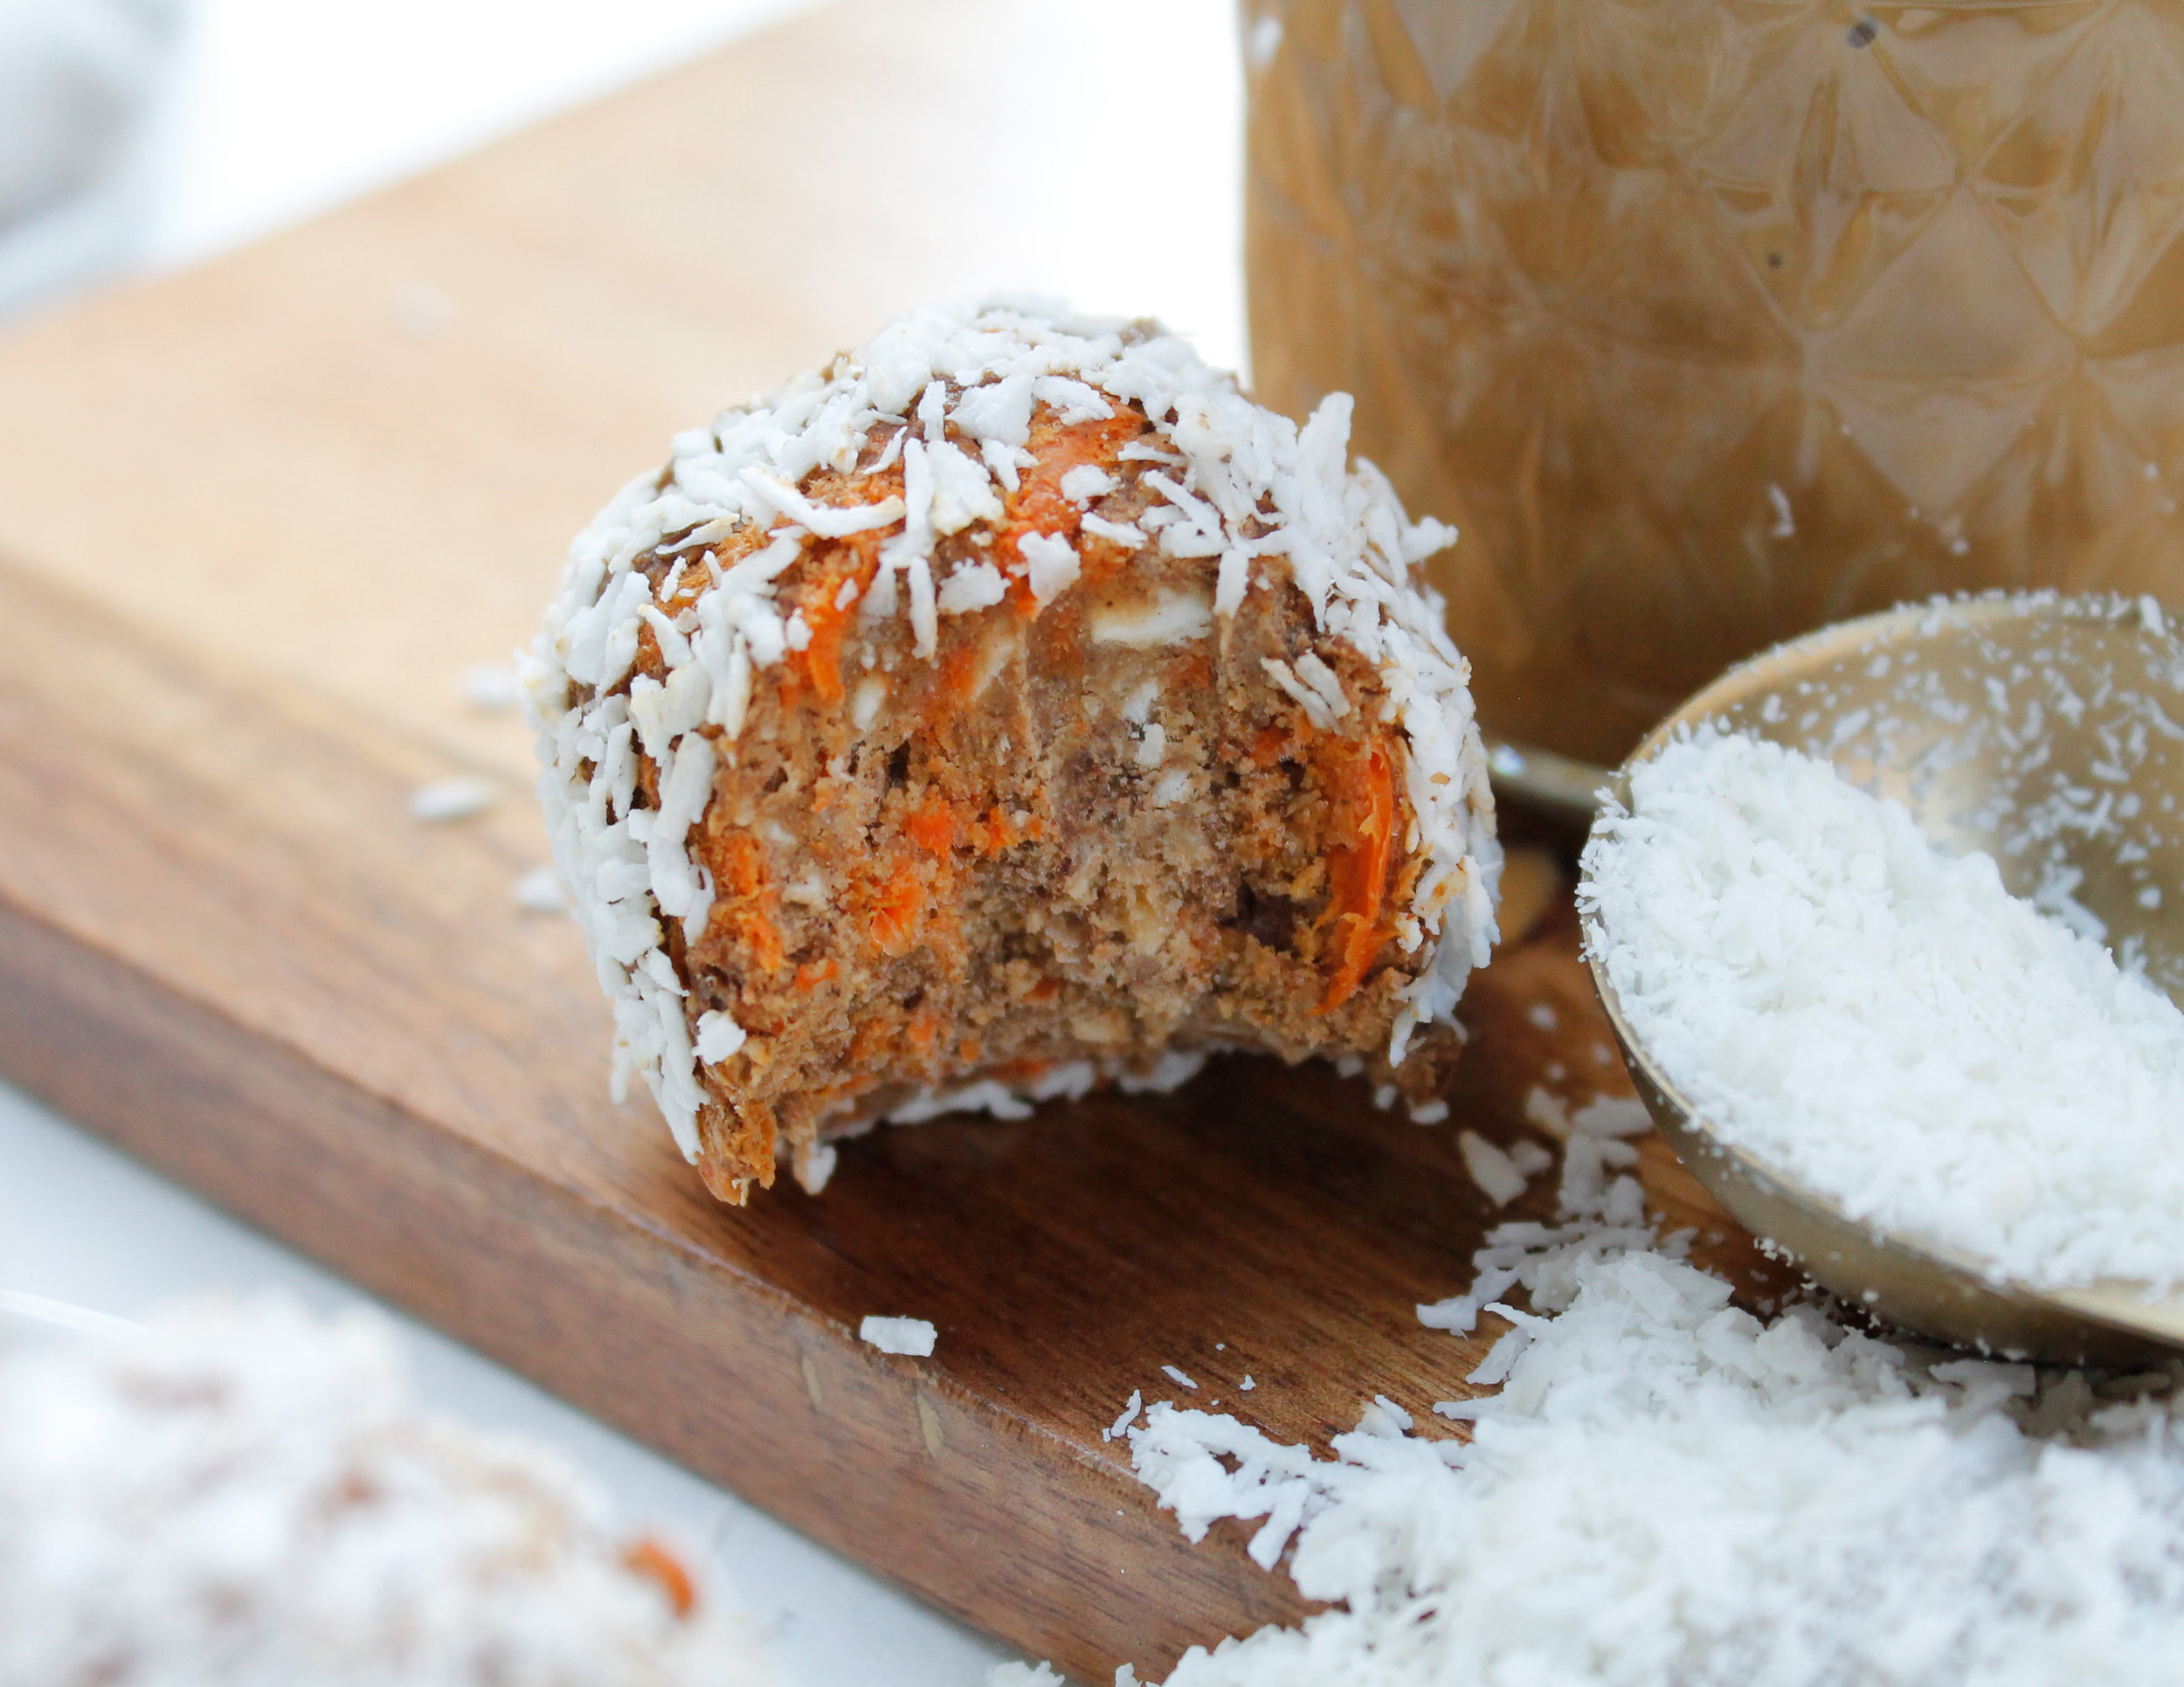 NUT FREE VEGAN PALEO CARROT CAKE BLISS BALLS || these nut free carrot cake energy balls are also refined sugar free, specific carbohydrate diet friendly and low histamine! They're the perfect healthy not-too-sweet treat, snack or pre-workout snack! Packed full of only a handful of nutrient dense ingredients, they're sure to be a crown pleaser! #nutfreerecipes #lowhistamine #lowhistaminesnacks #specificcarbohydratediet #scddiet #tigernutbutter #carrotcakeblissballs || plentyandwell.com